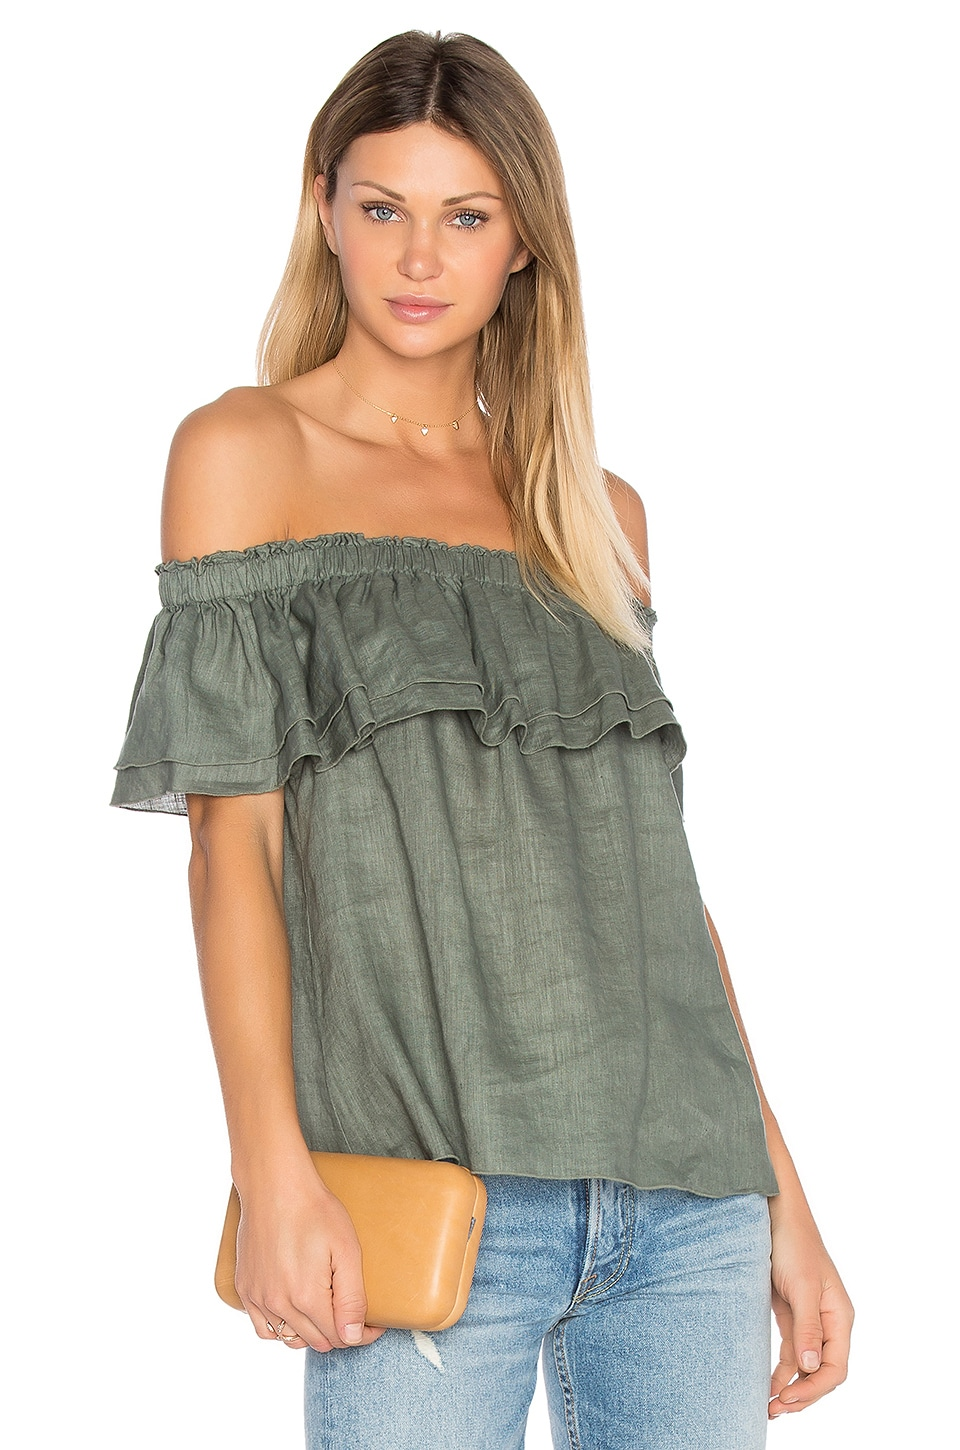 Birdy Top by Yfb Clothing